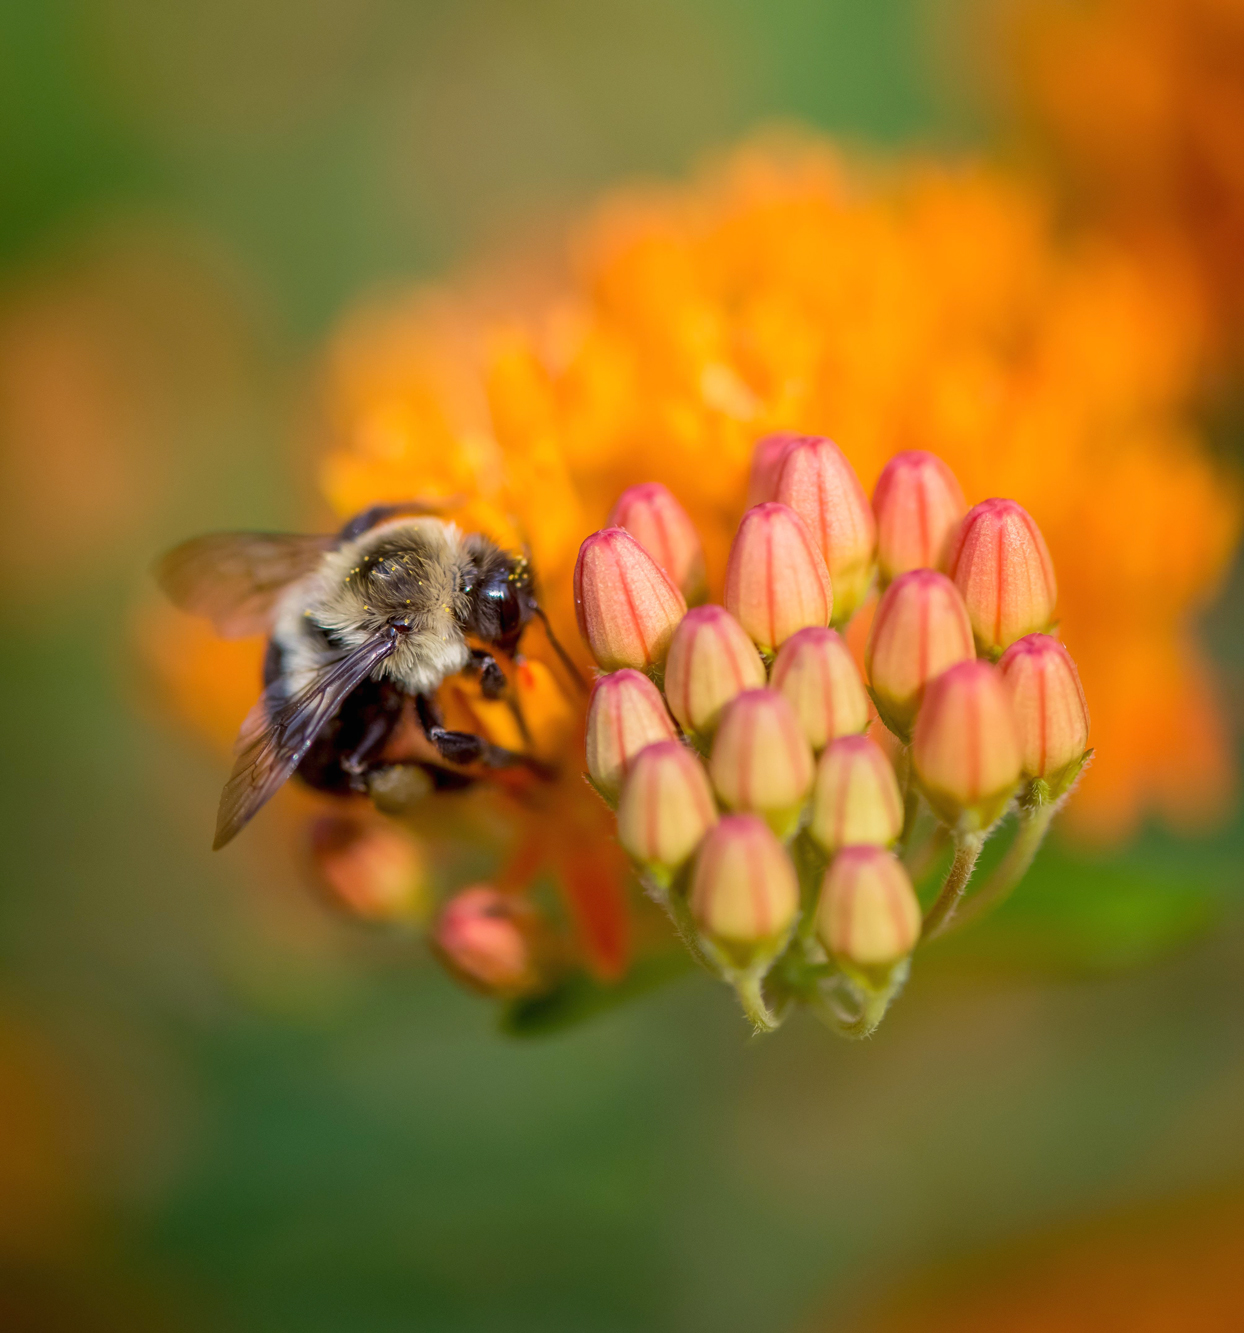 close up of bee on flower buds